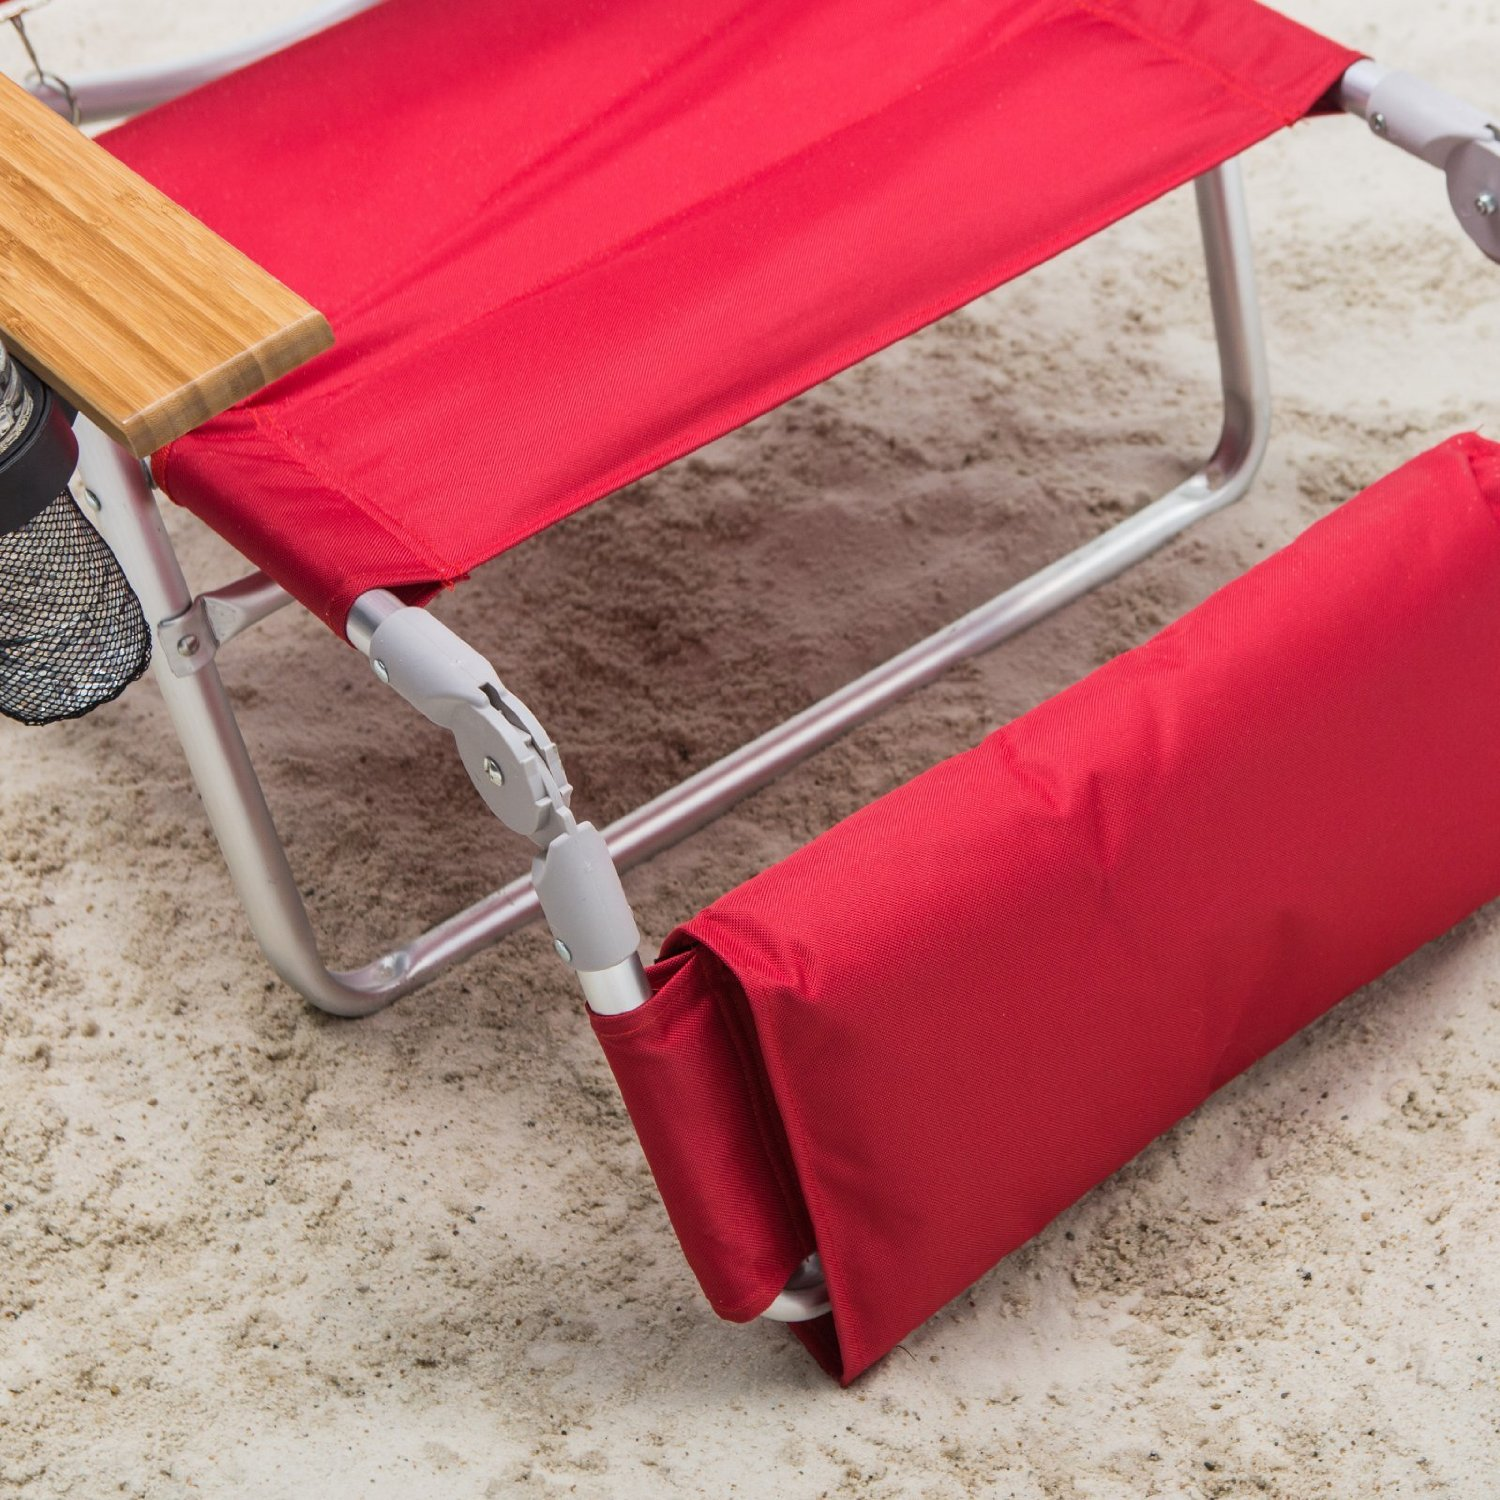 padded beach chair retro metal outdoor chairs ostrich 3 n 1 lounger with side tray ebay